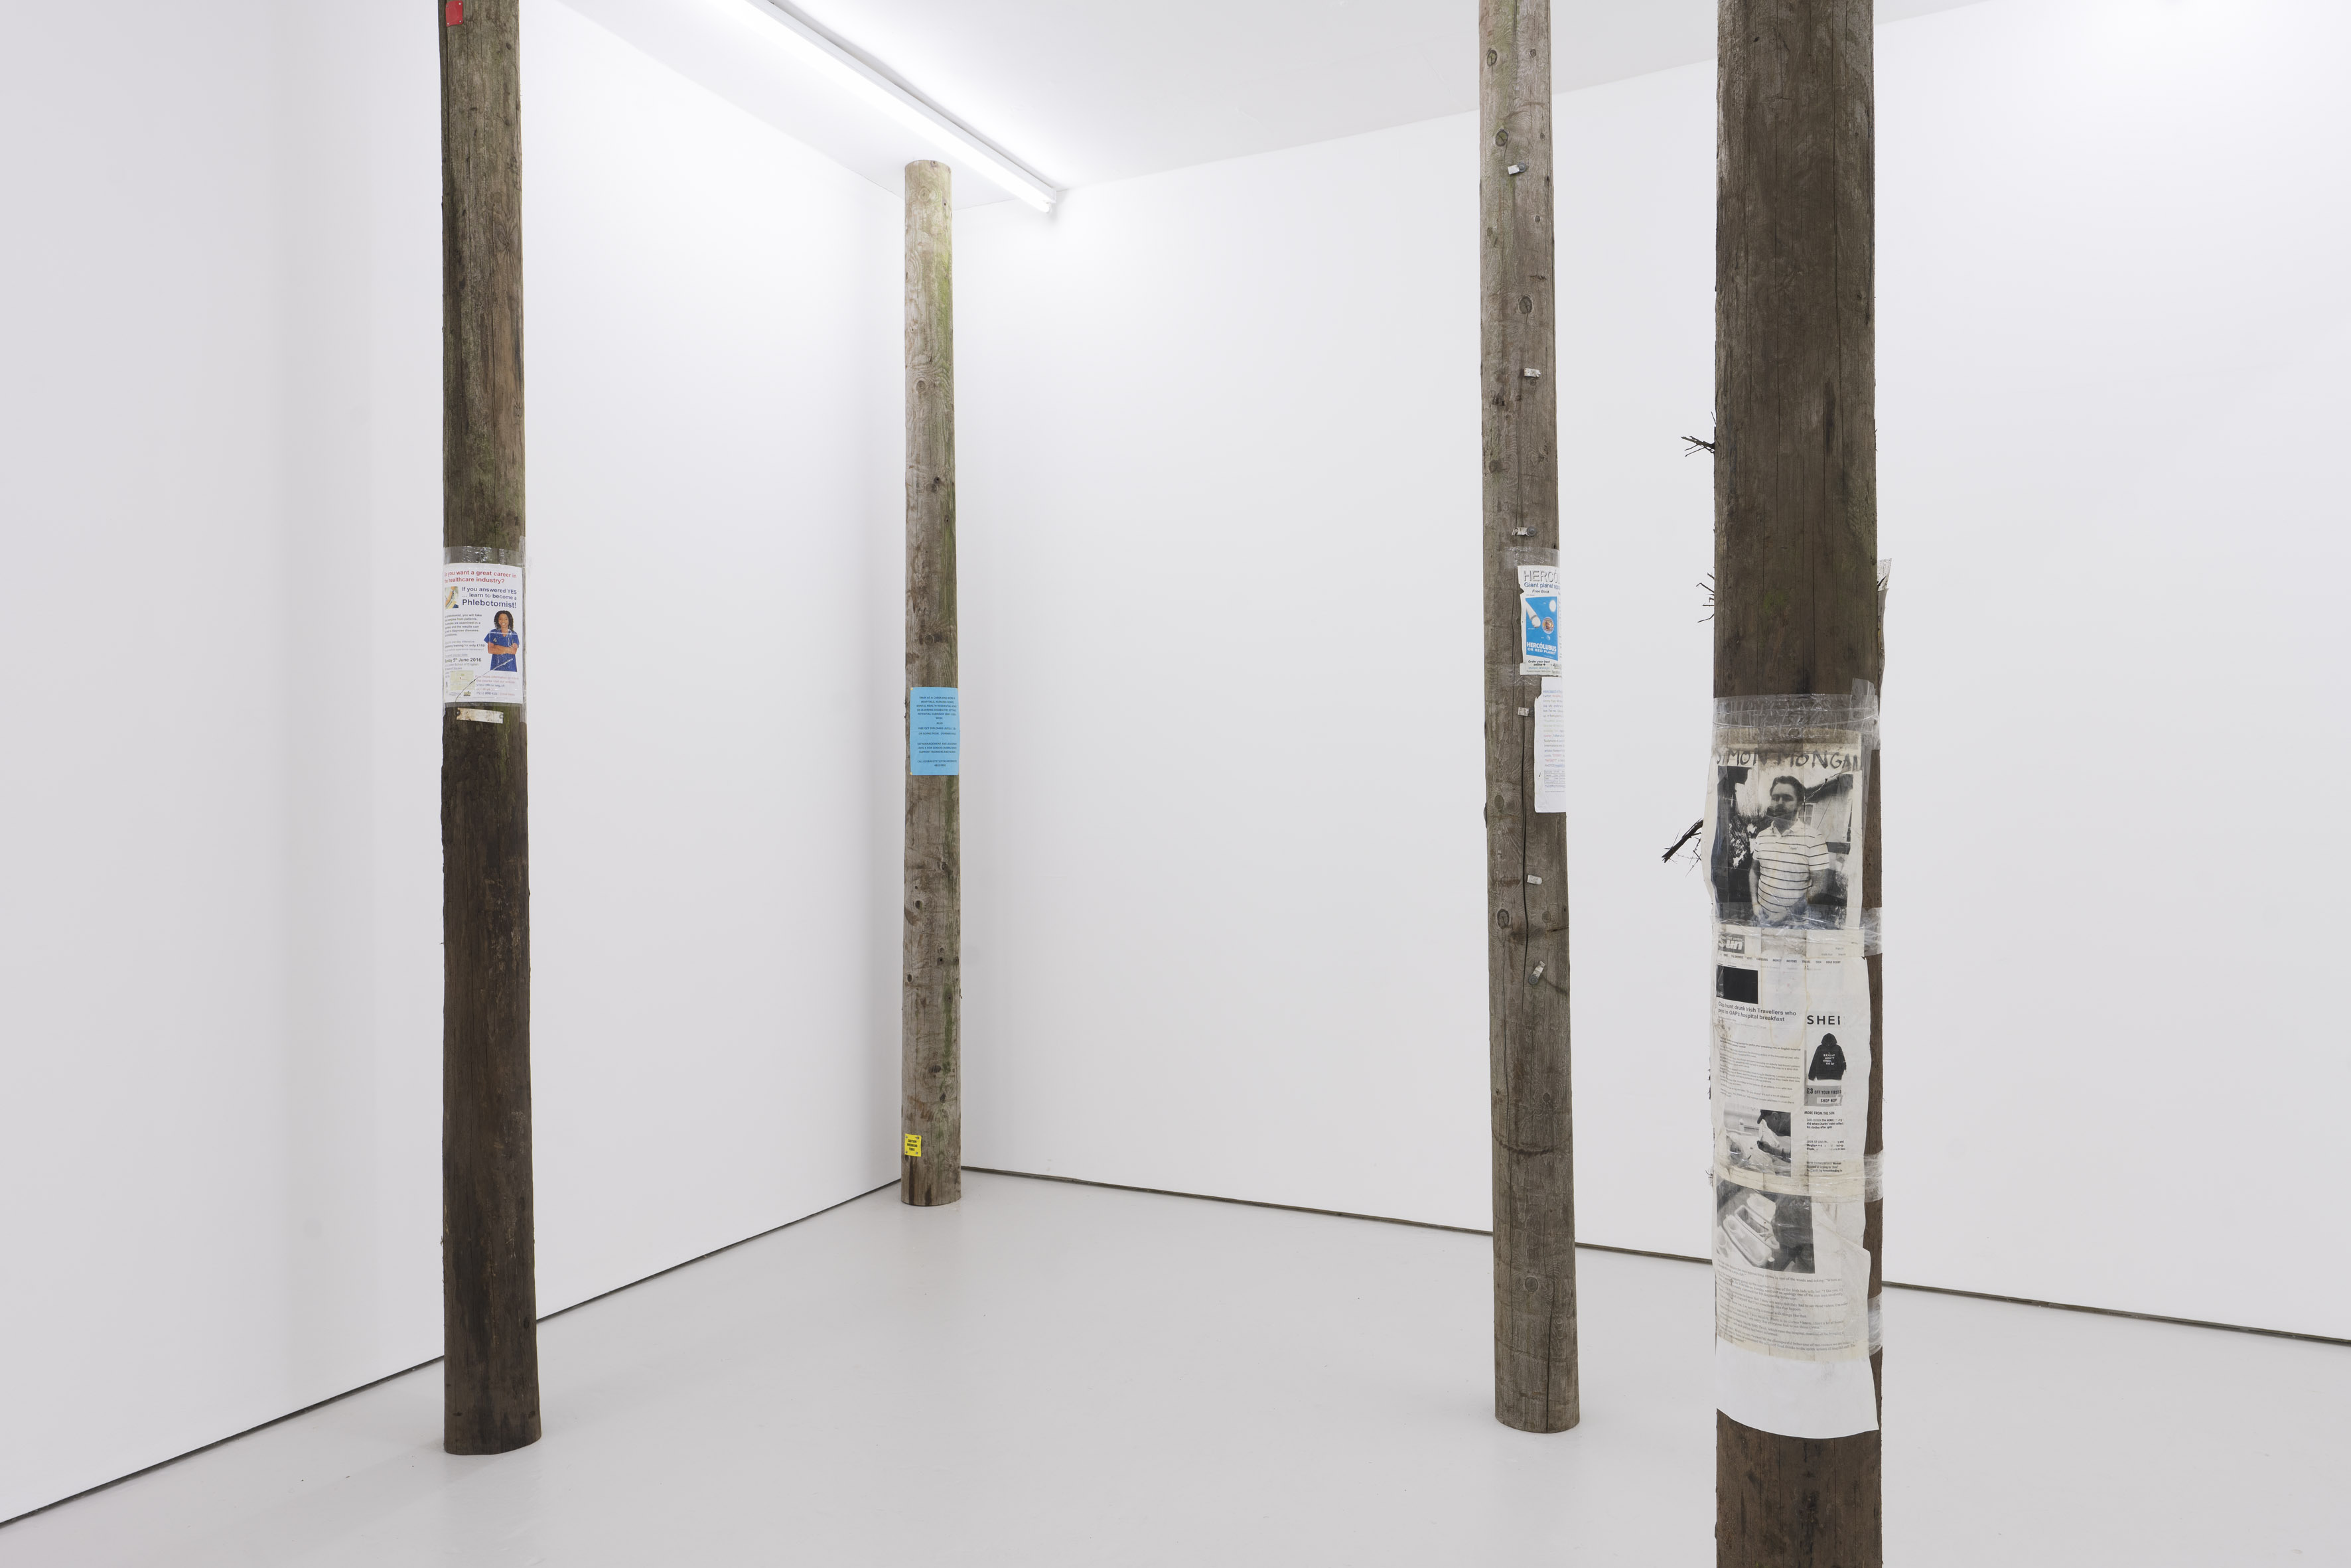 Installation view. Courtesy the artists and Carlos/Ishikawa, London.